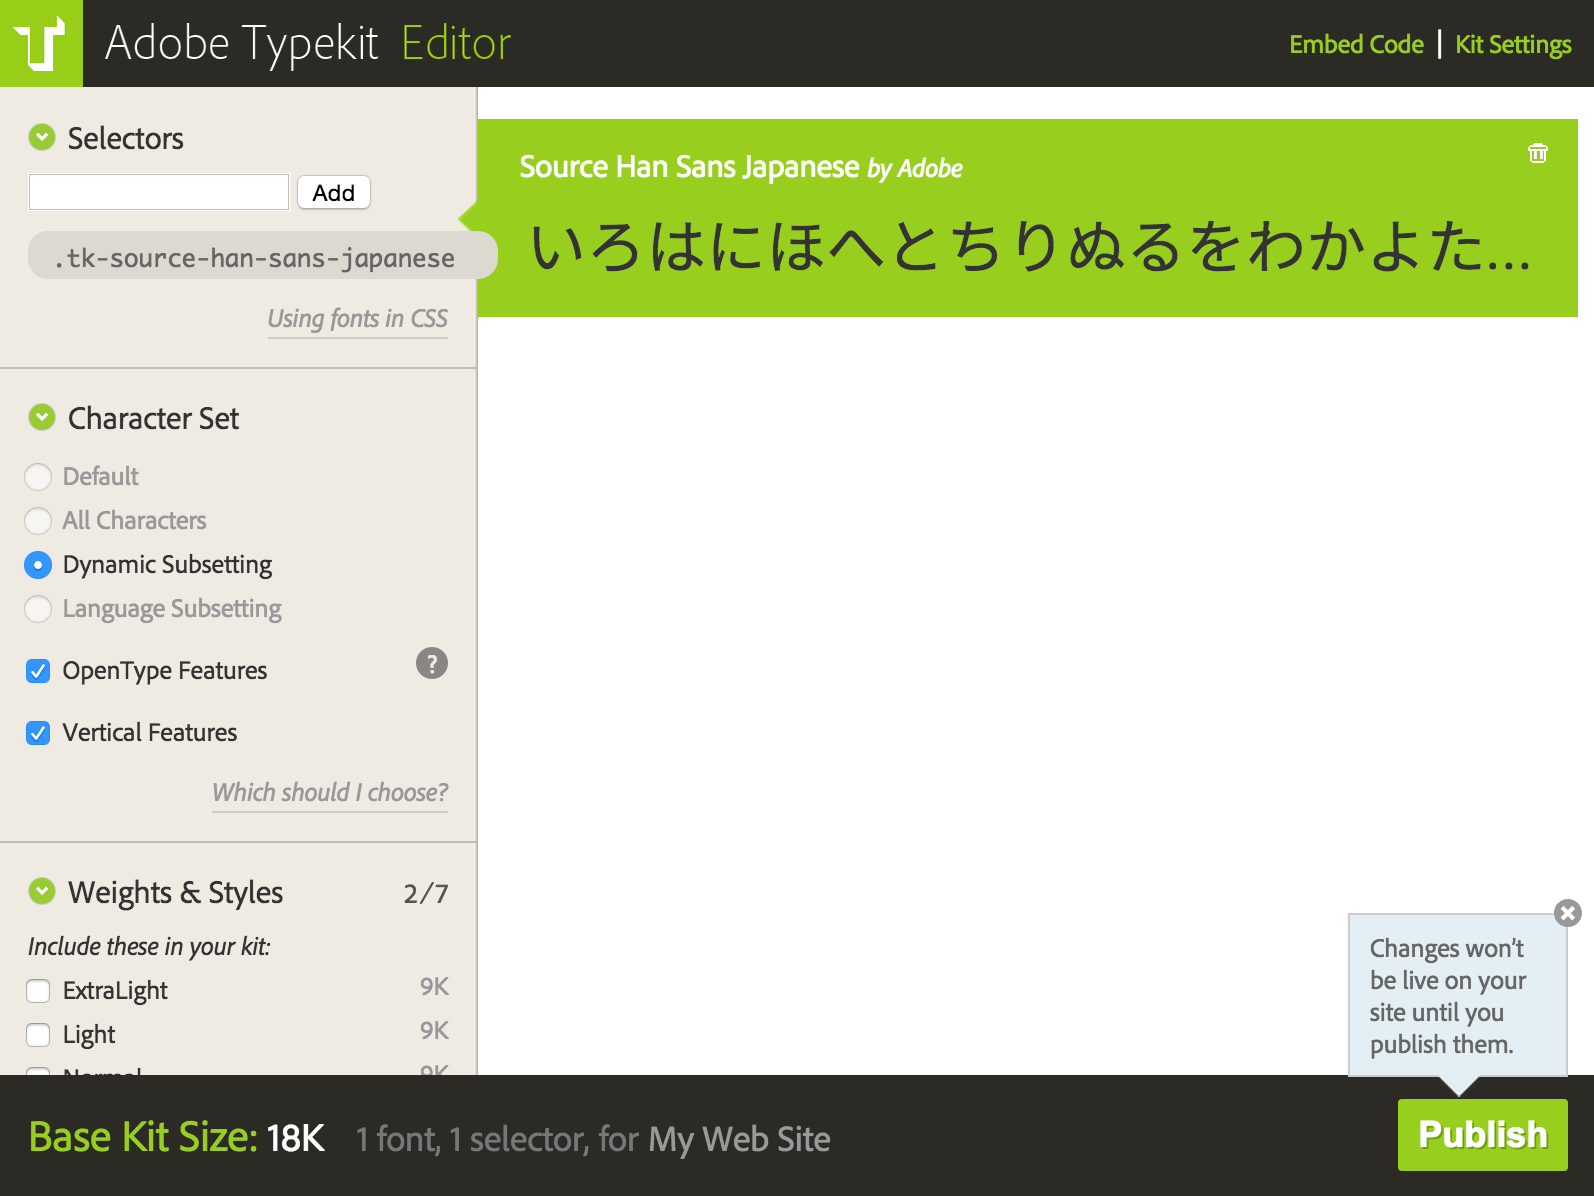 Dynamic Subsetting is automatically selected in kits using East Asian web fonts.